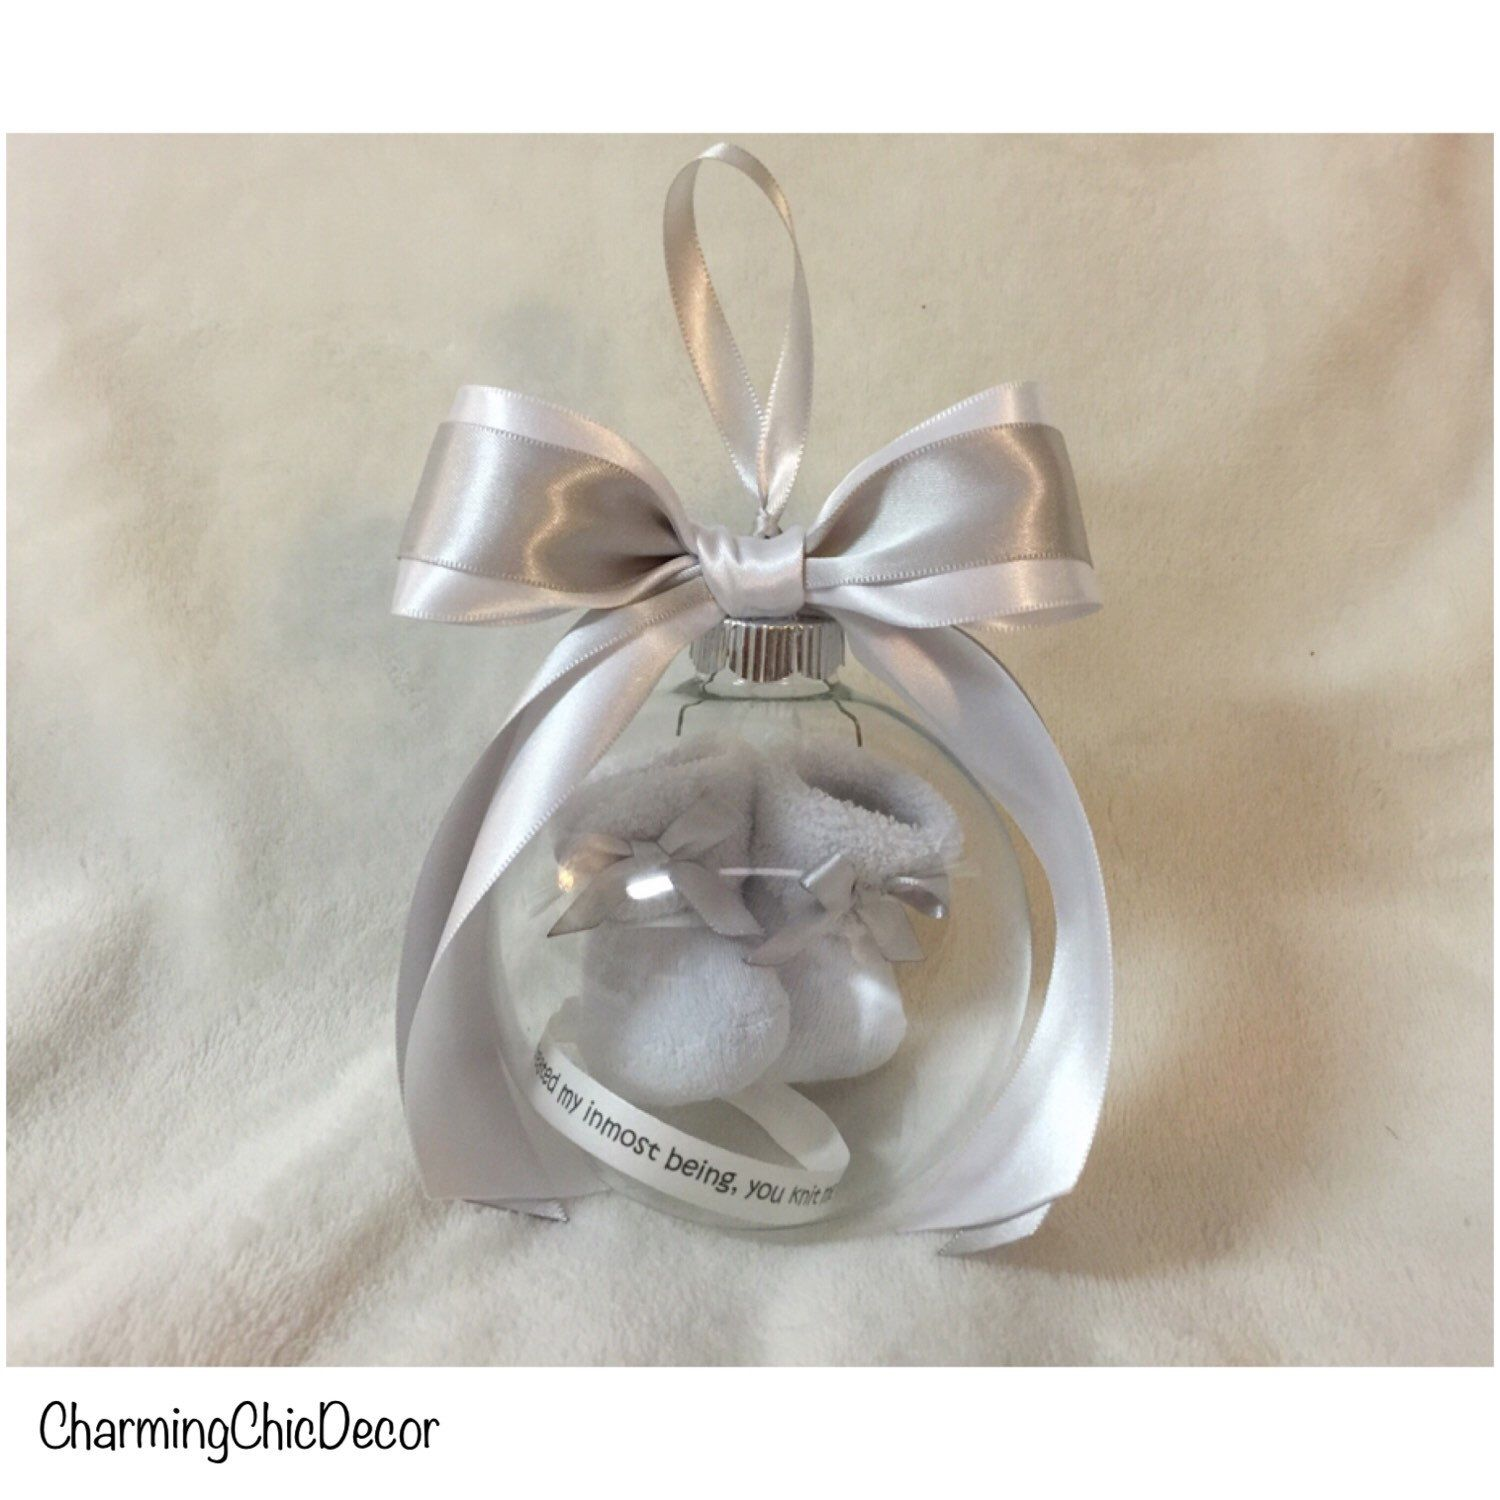 Pregnancy Loss Keepsake Ornament With Floating Baby Booties, Baby Memorial